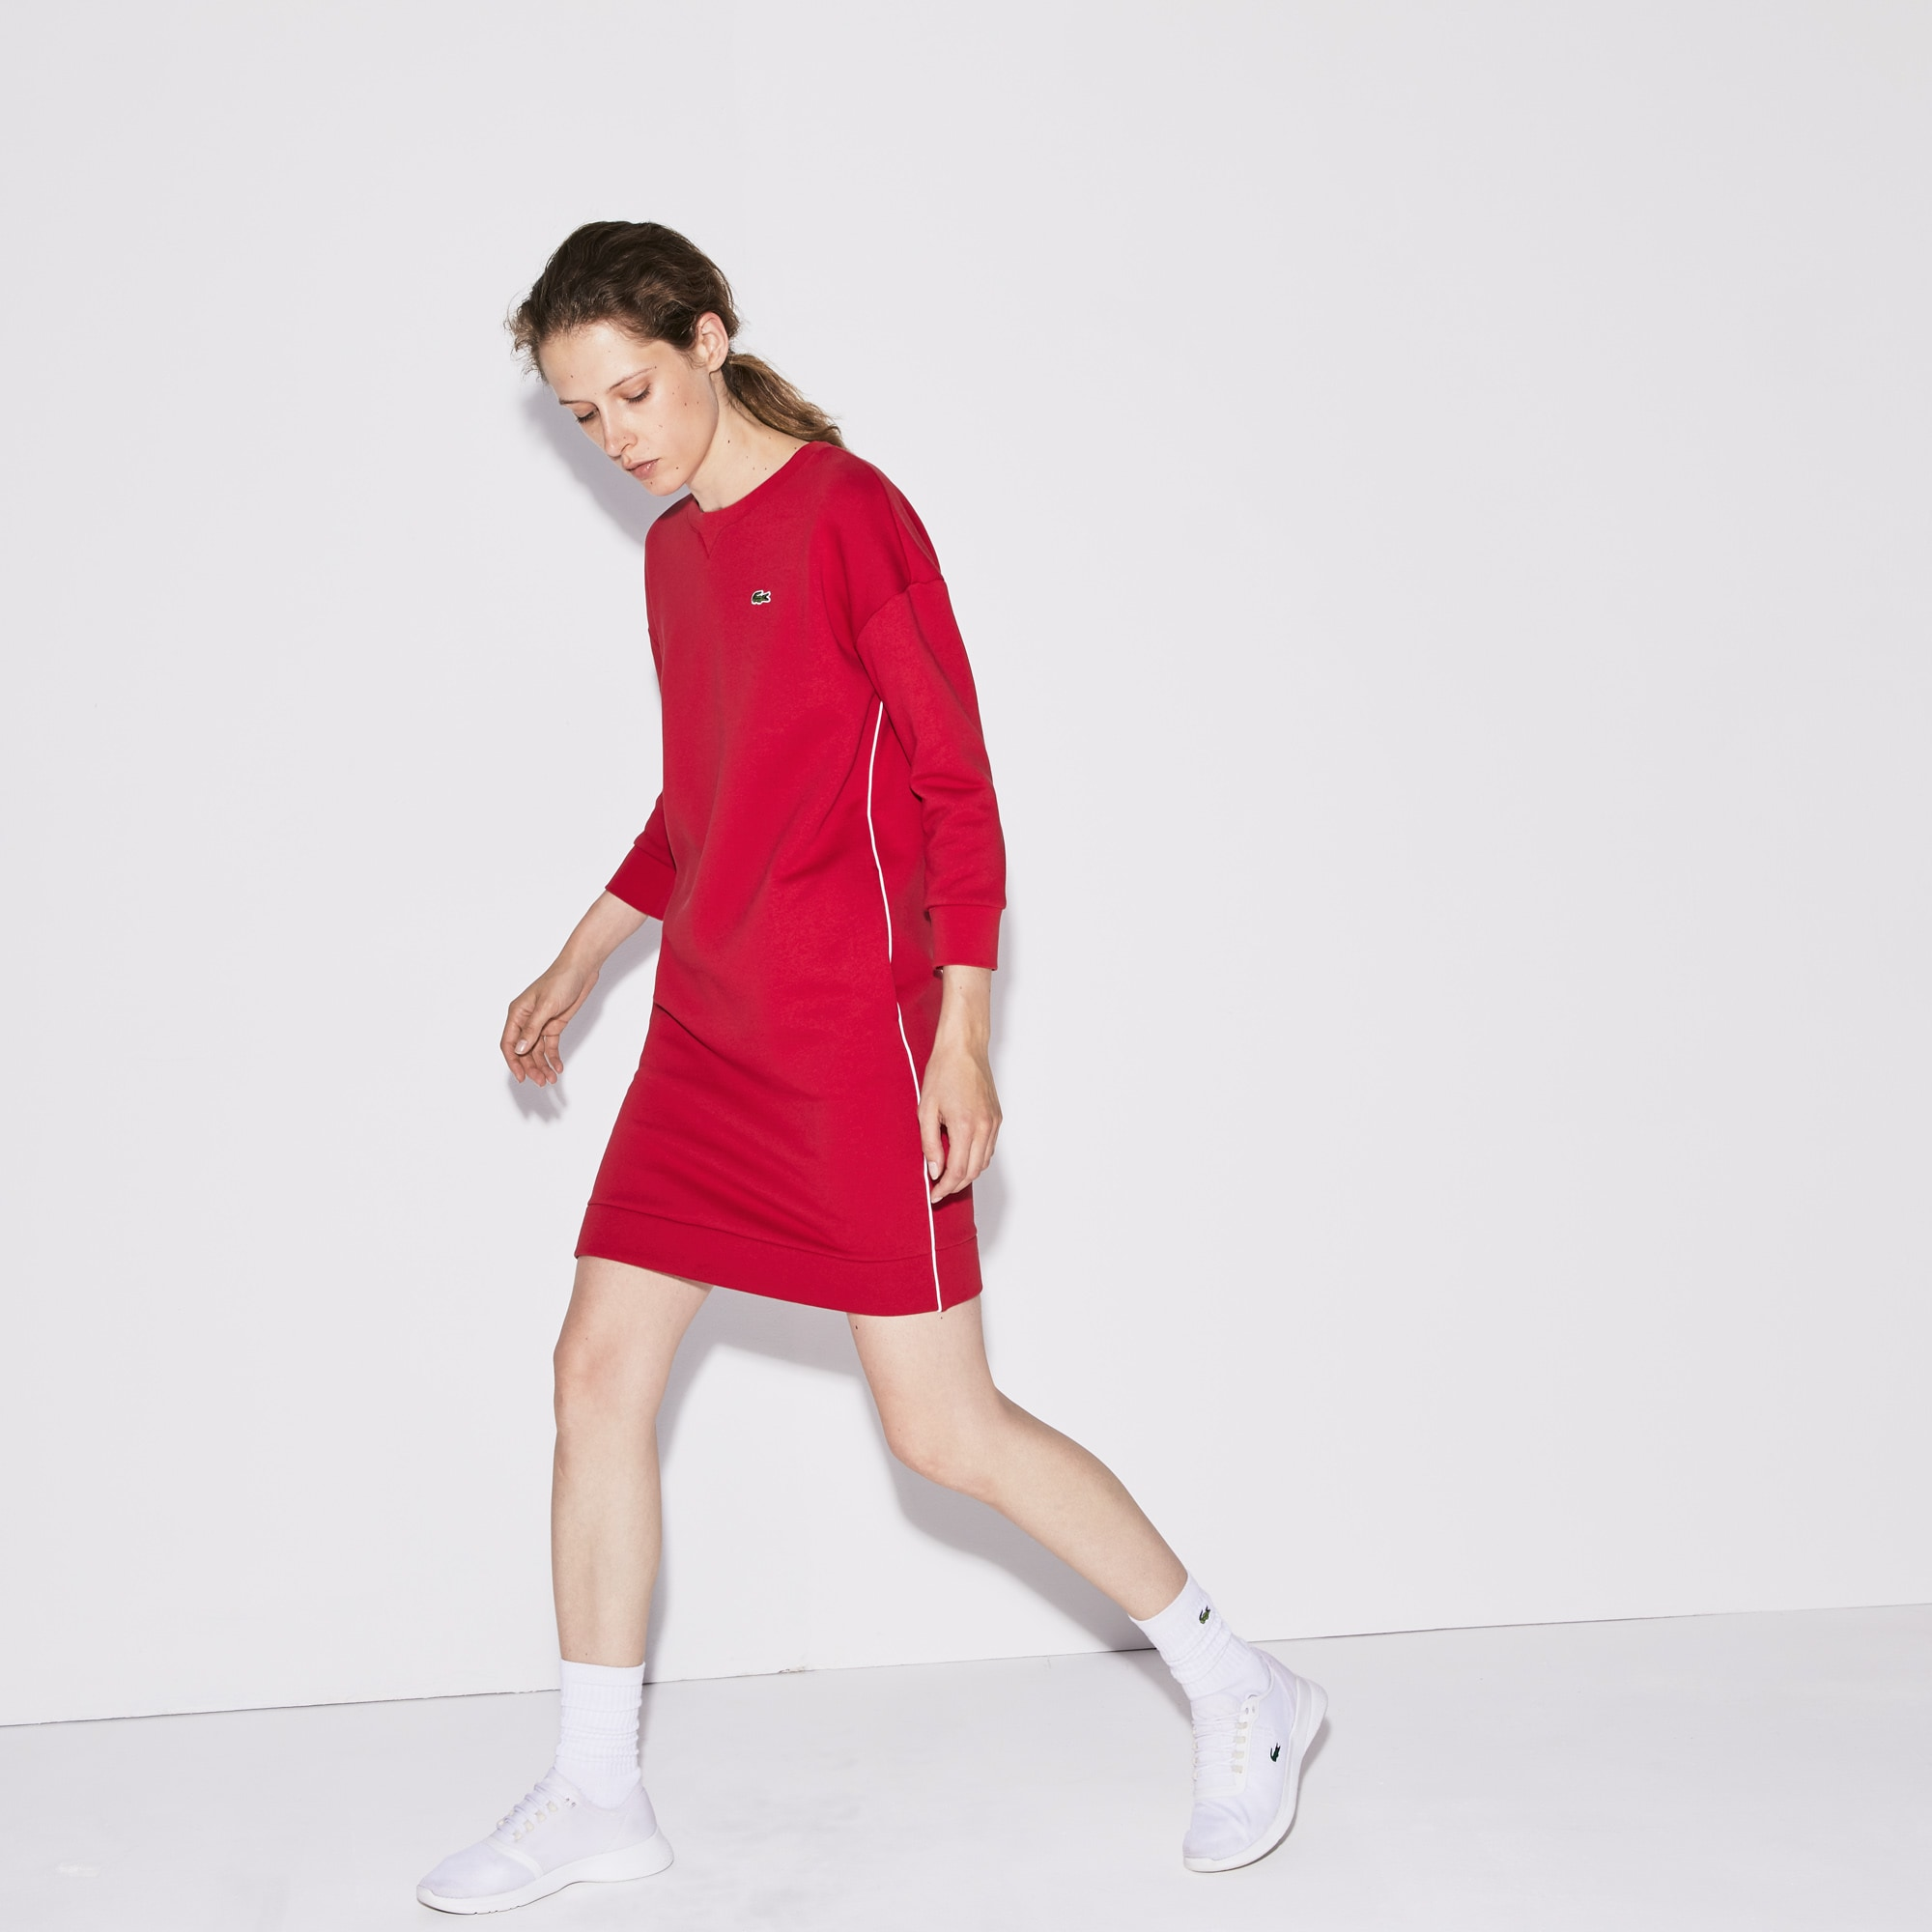 Women's SPORT Piped Fleece Tennis Sweatshirt Dress